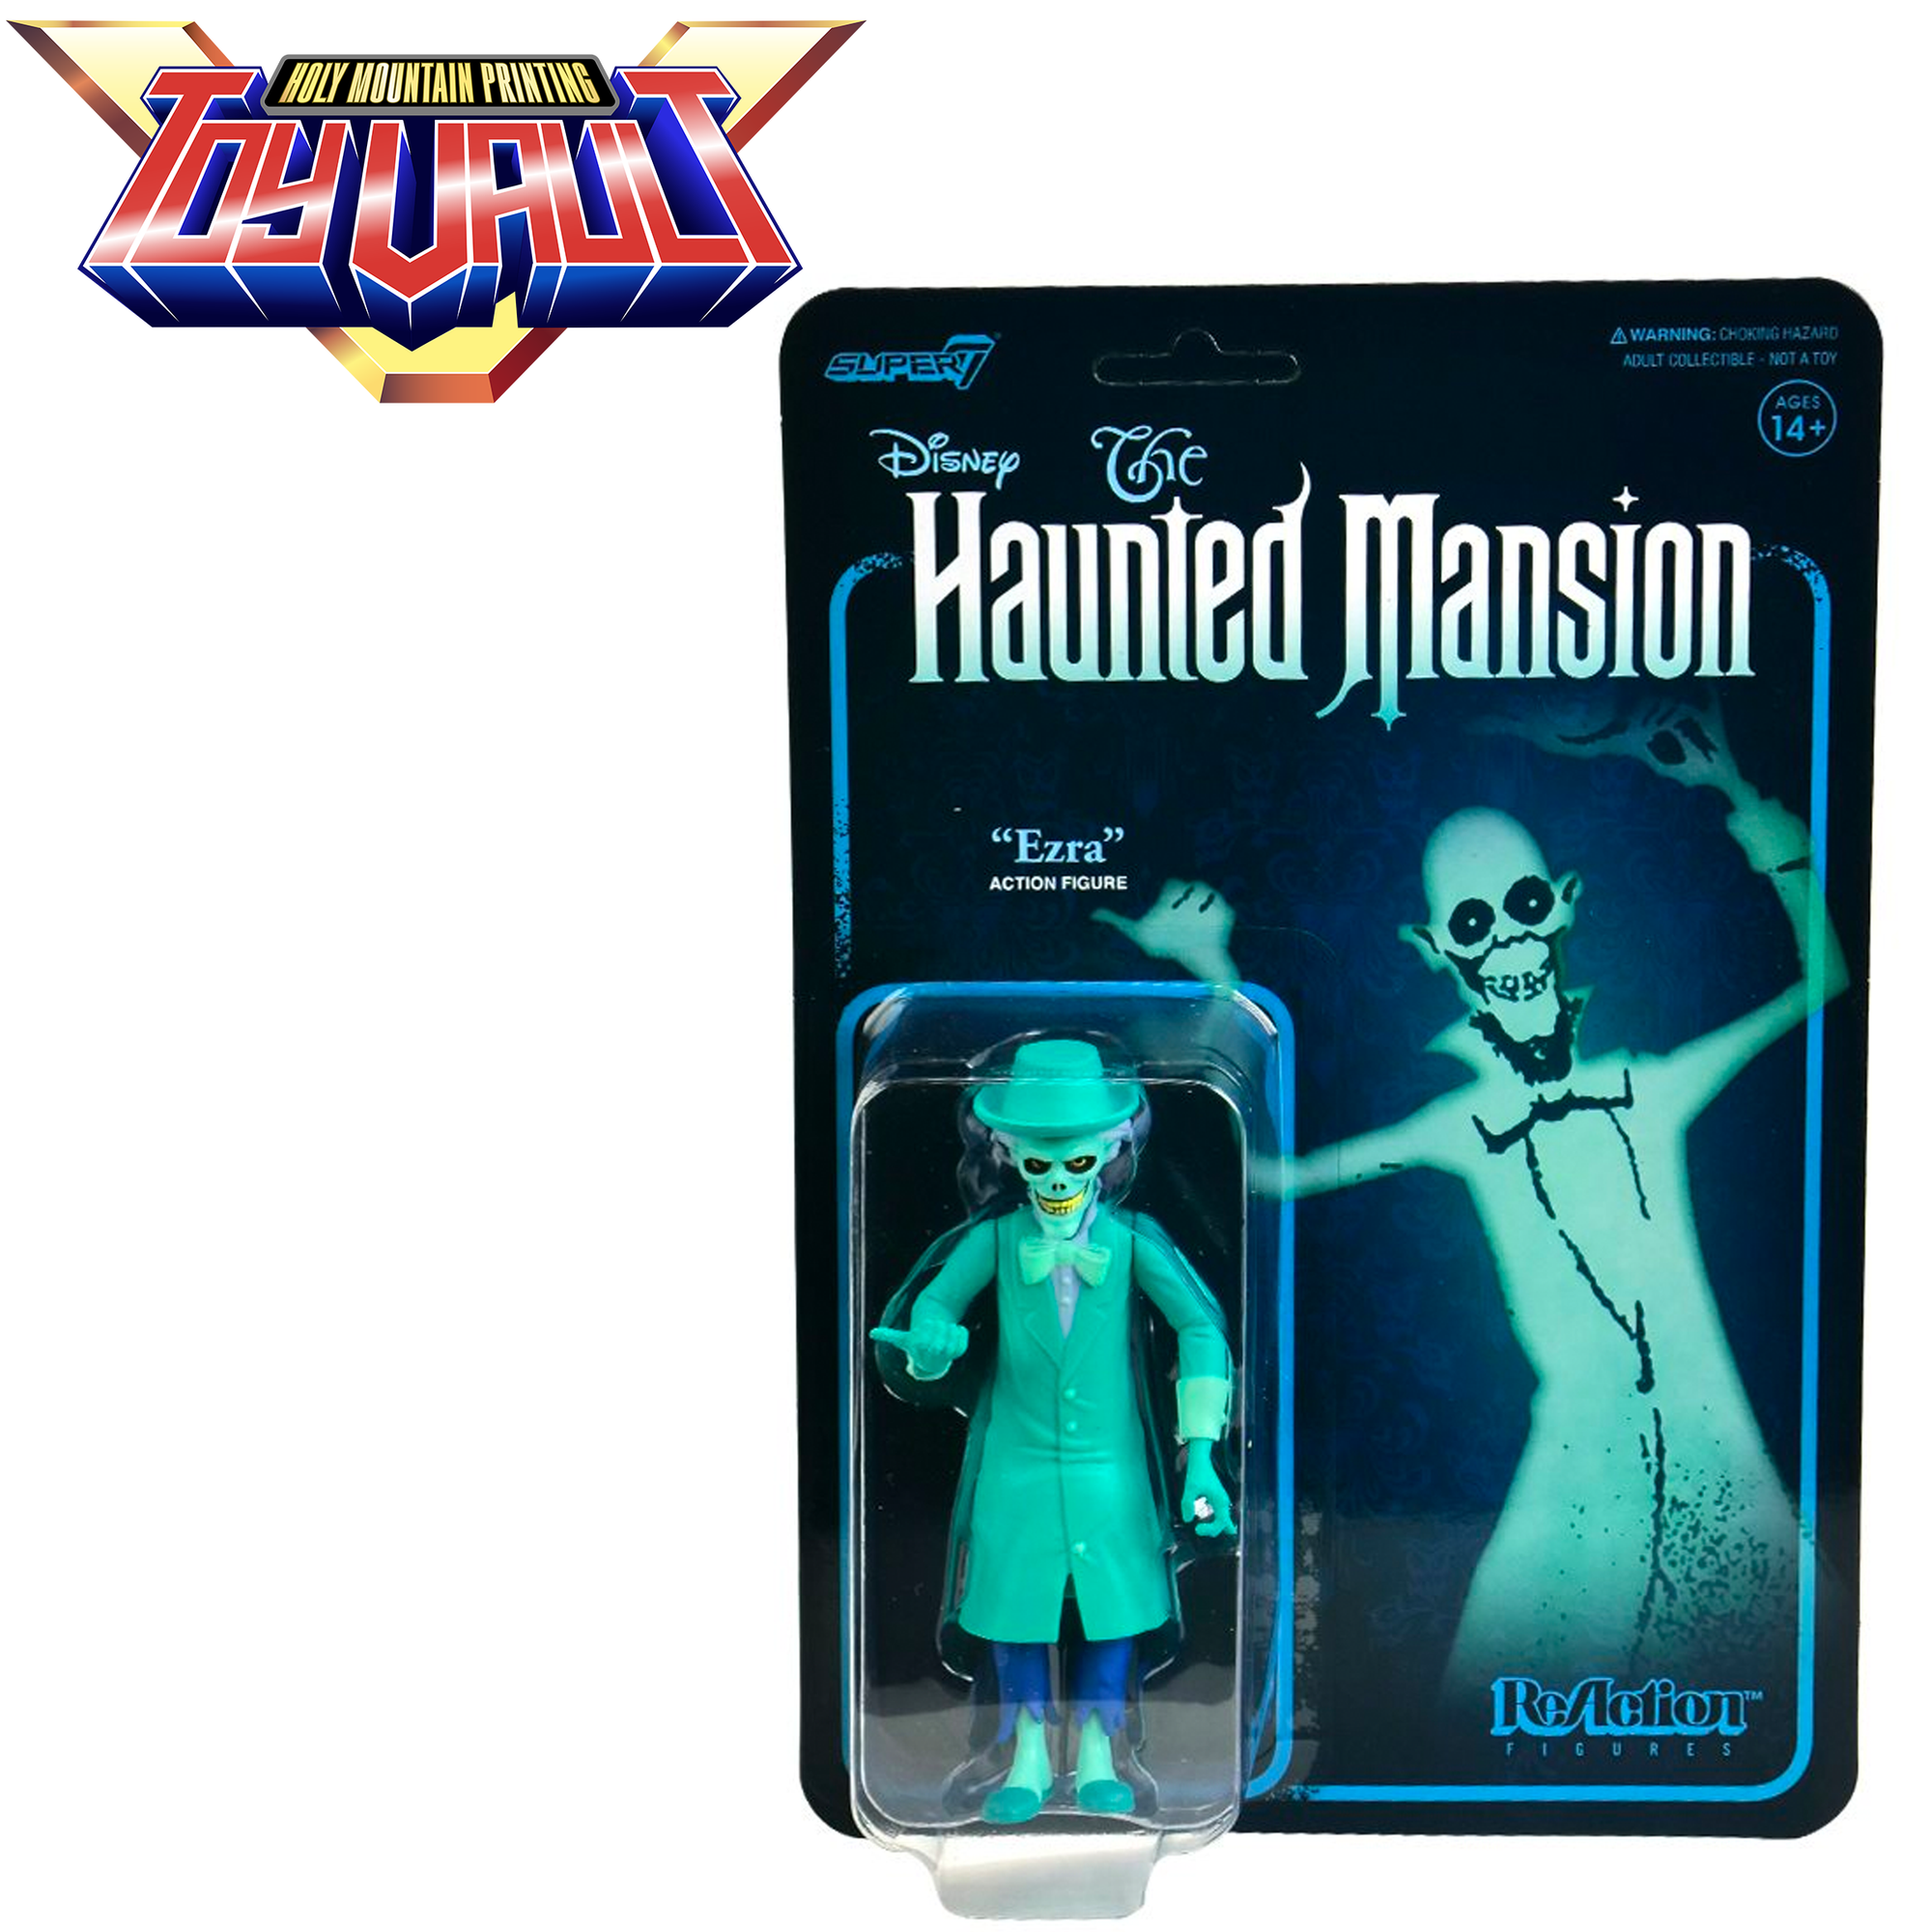 SUPER7 - The Haunted Mansion ReAction - Ezra - Figure